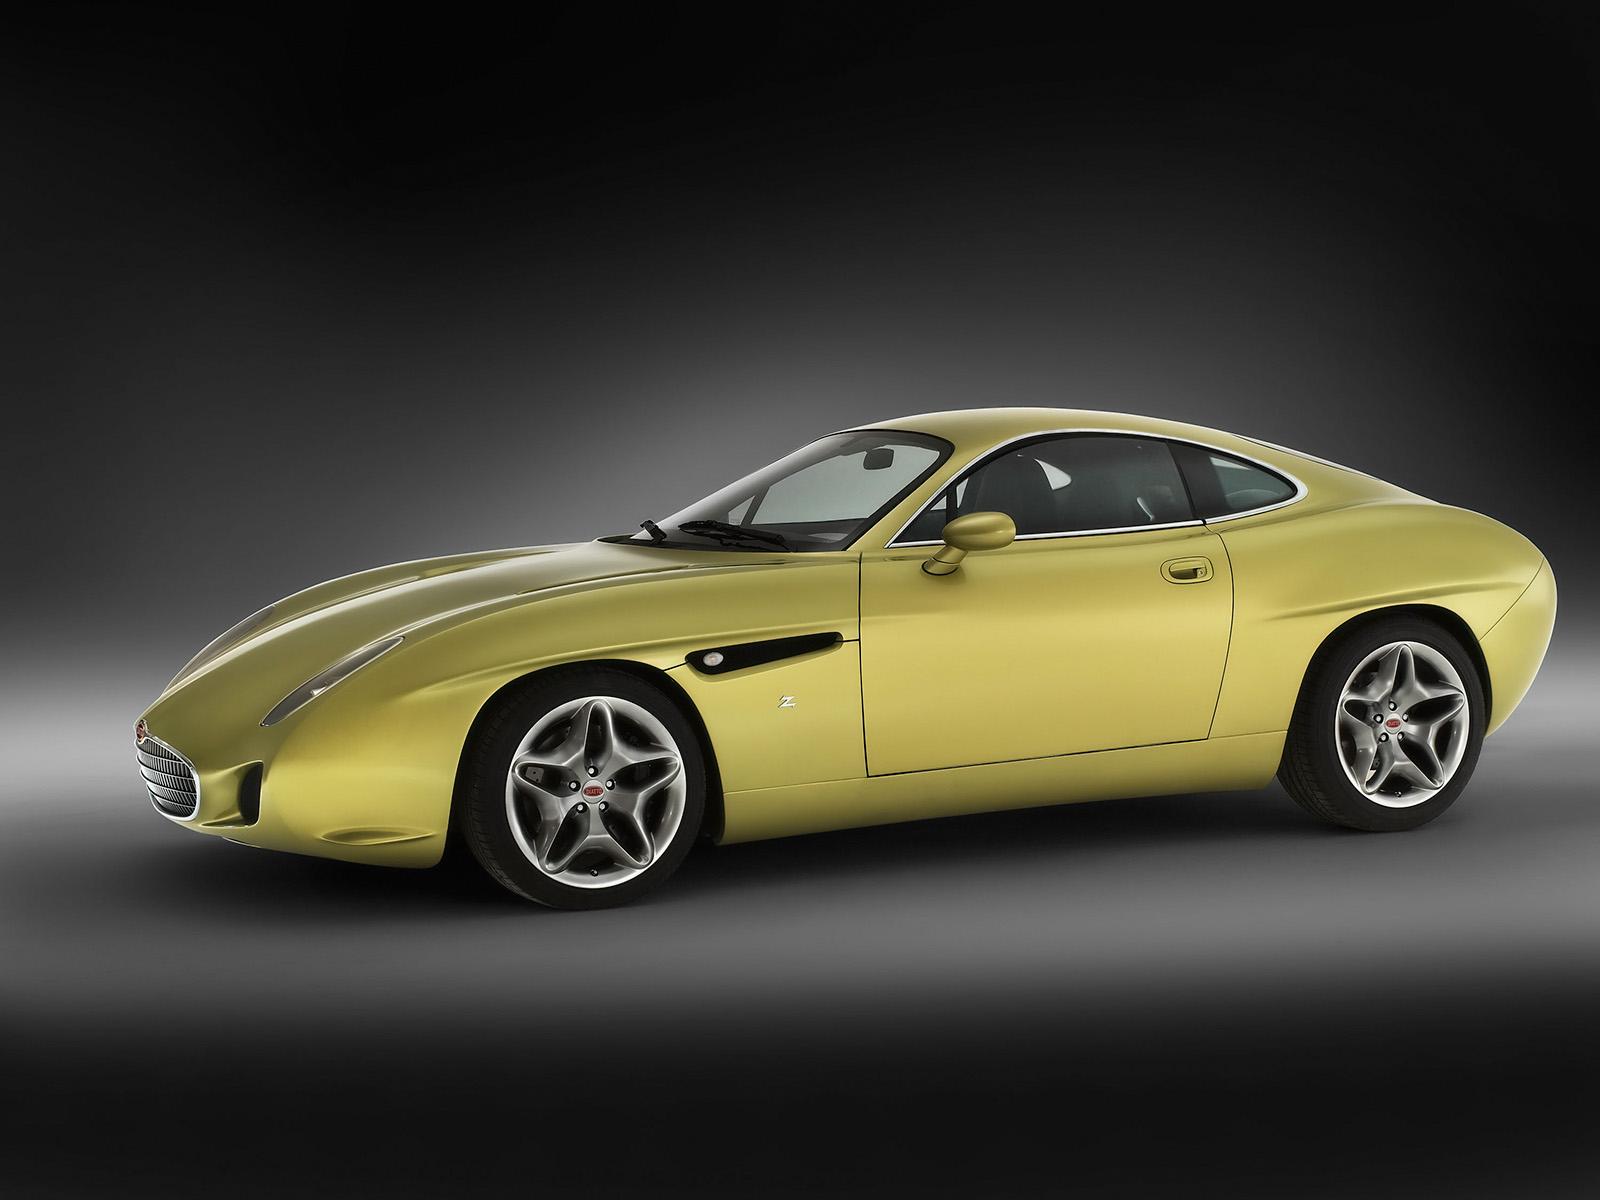 Diatto gallery with Zagato pics updates weekly, don't forget to come back!